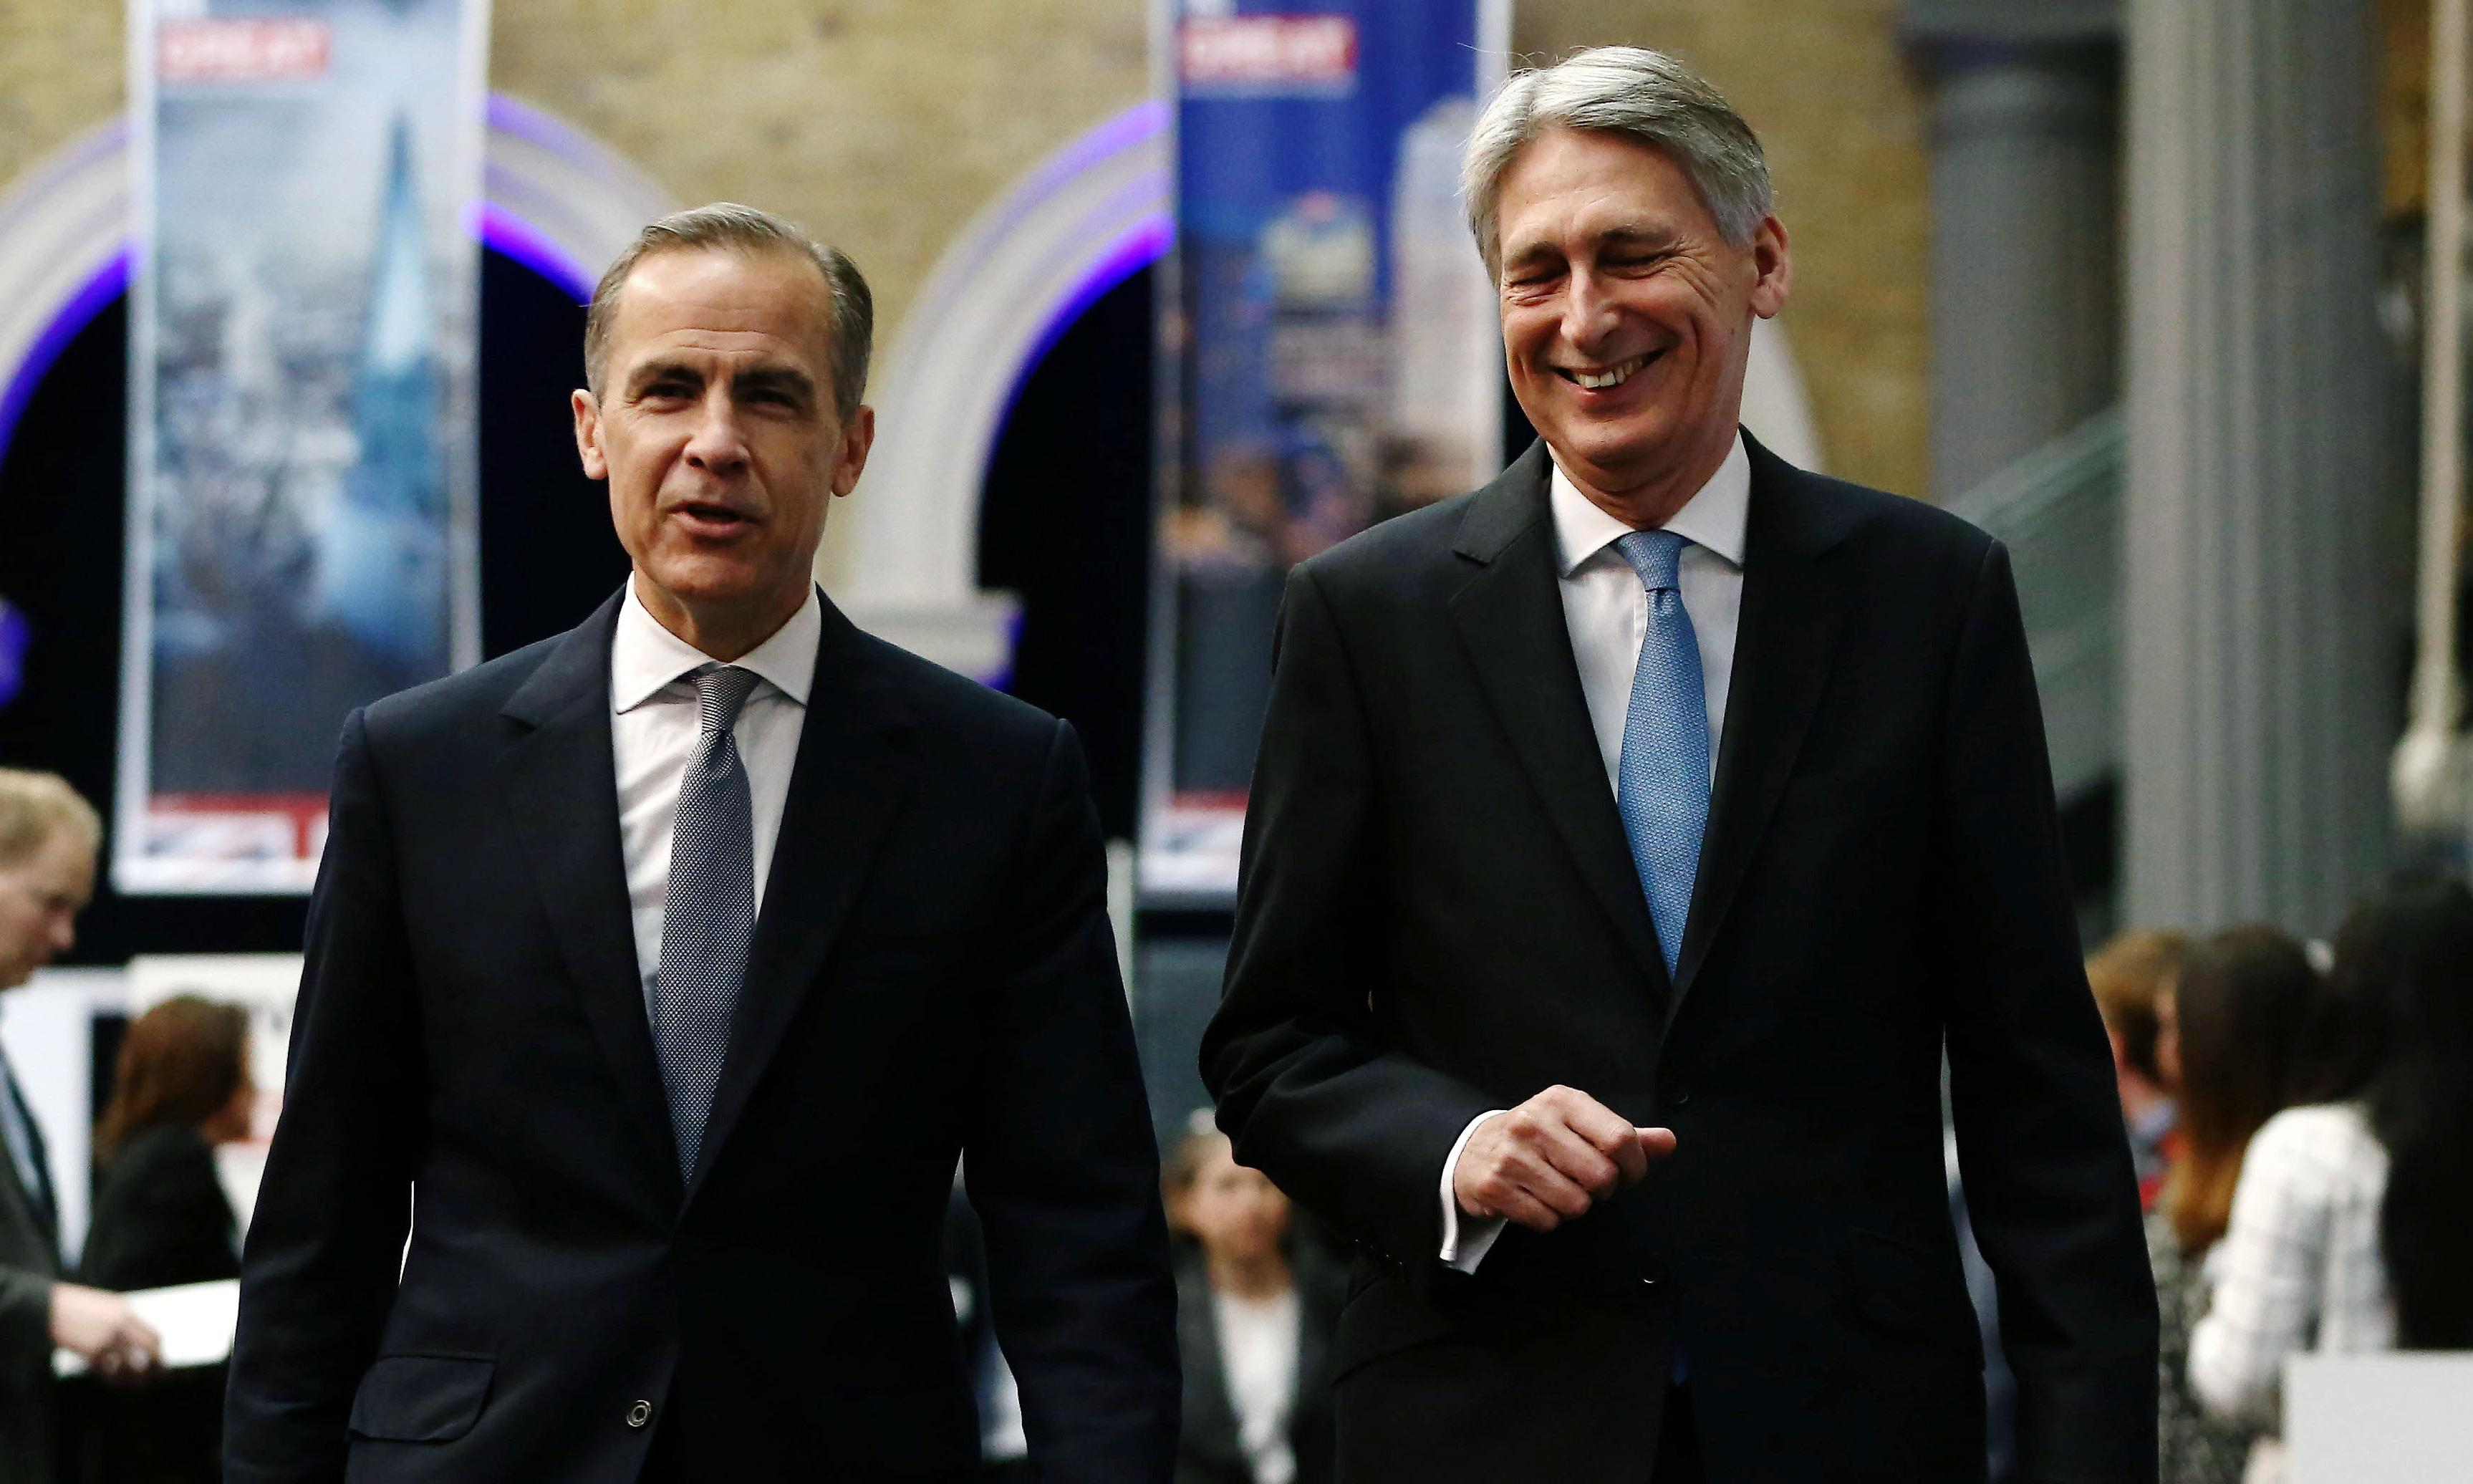 With Philip Hammond's departure likely, an uphill battle awaits his successor